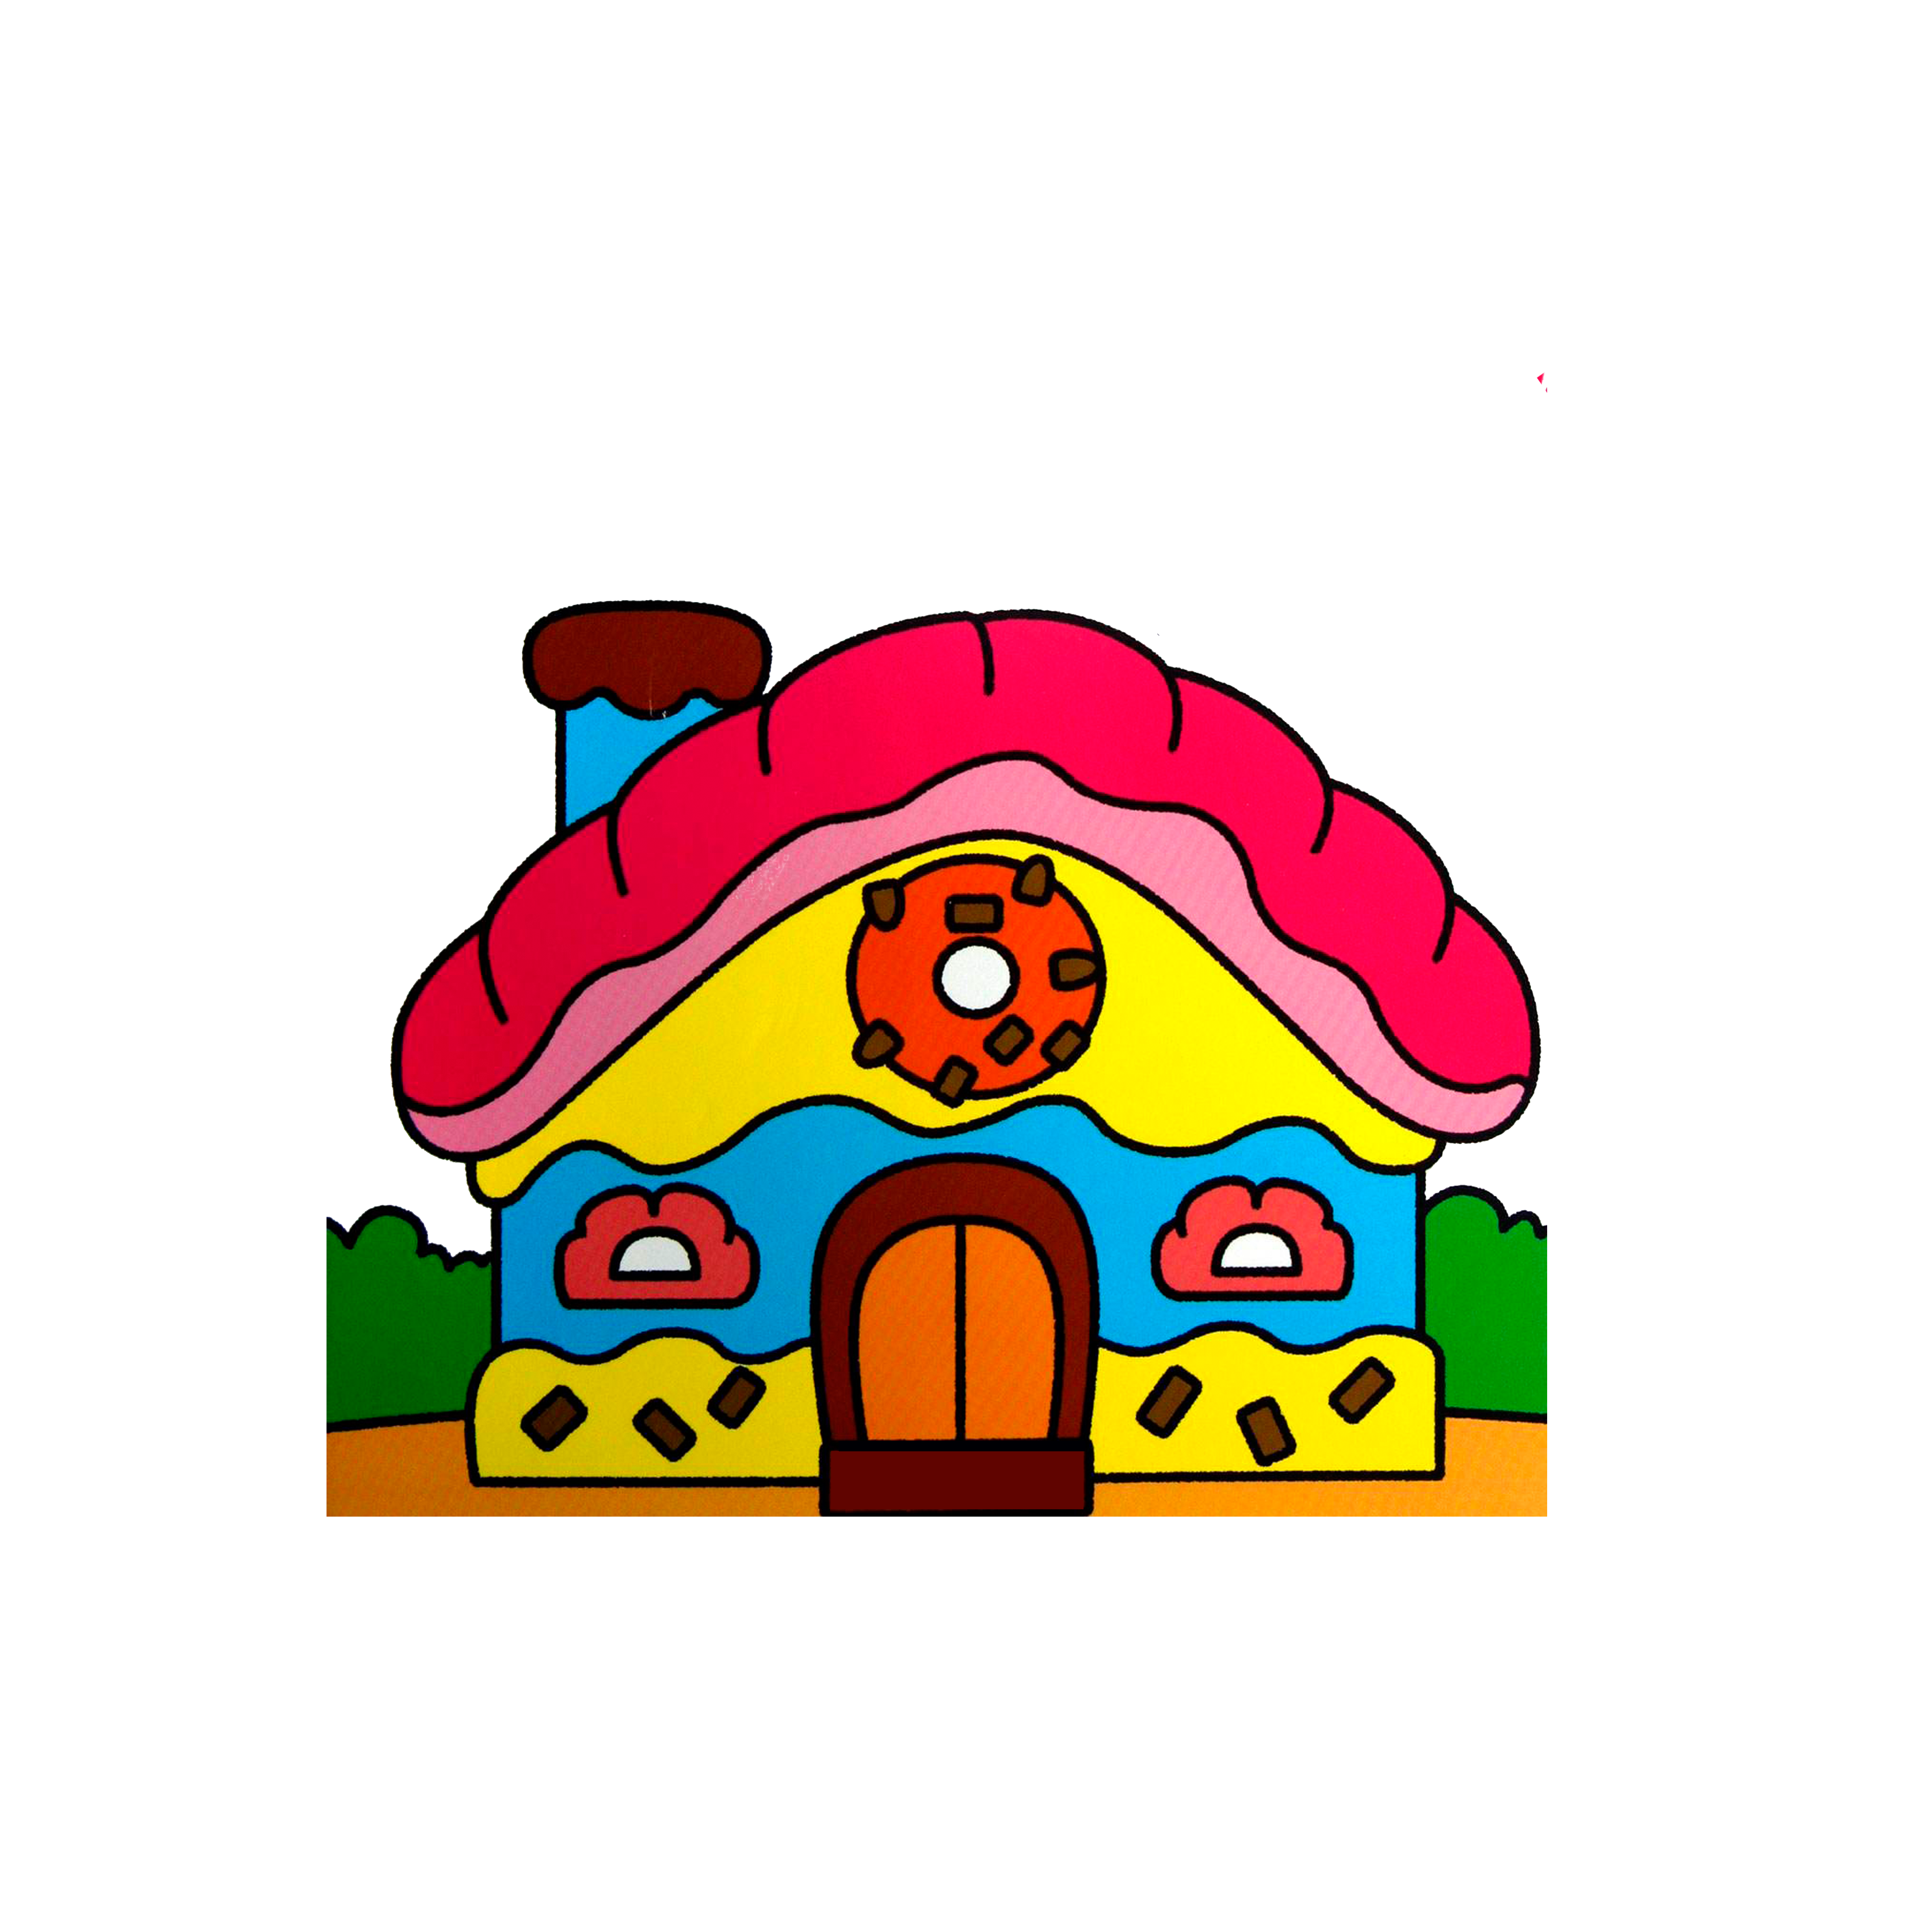 Drawing candy. Clip art house transprent